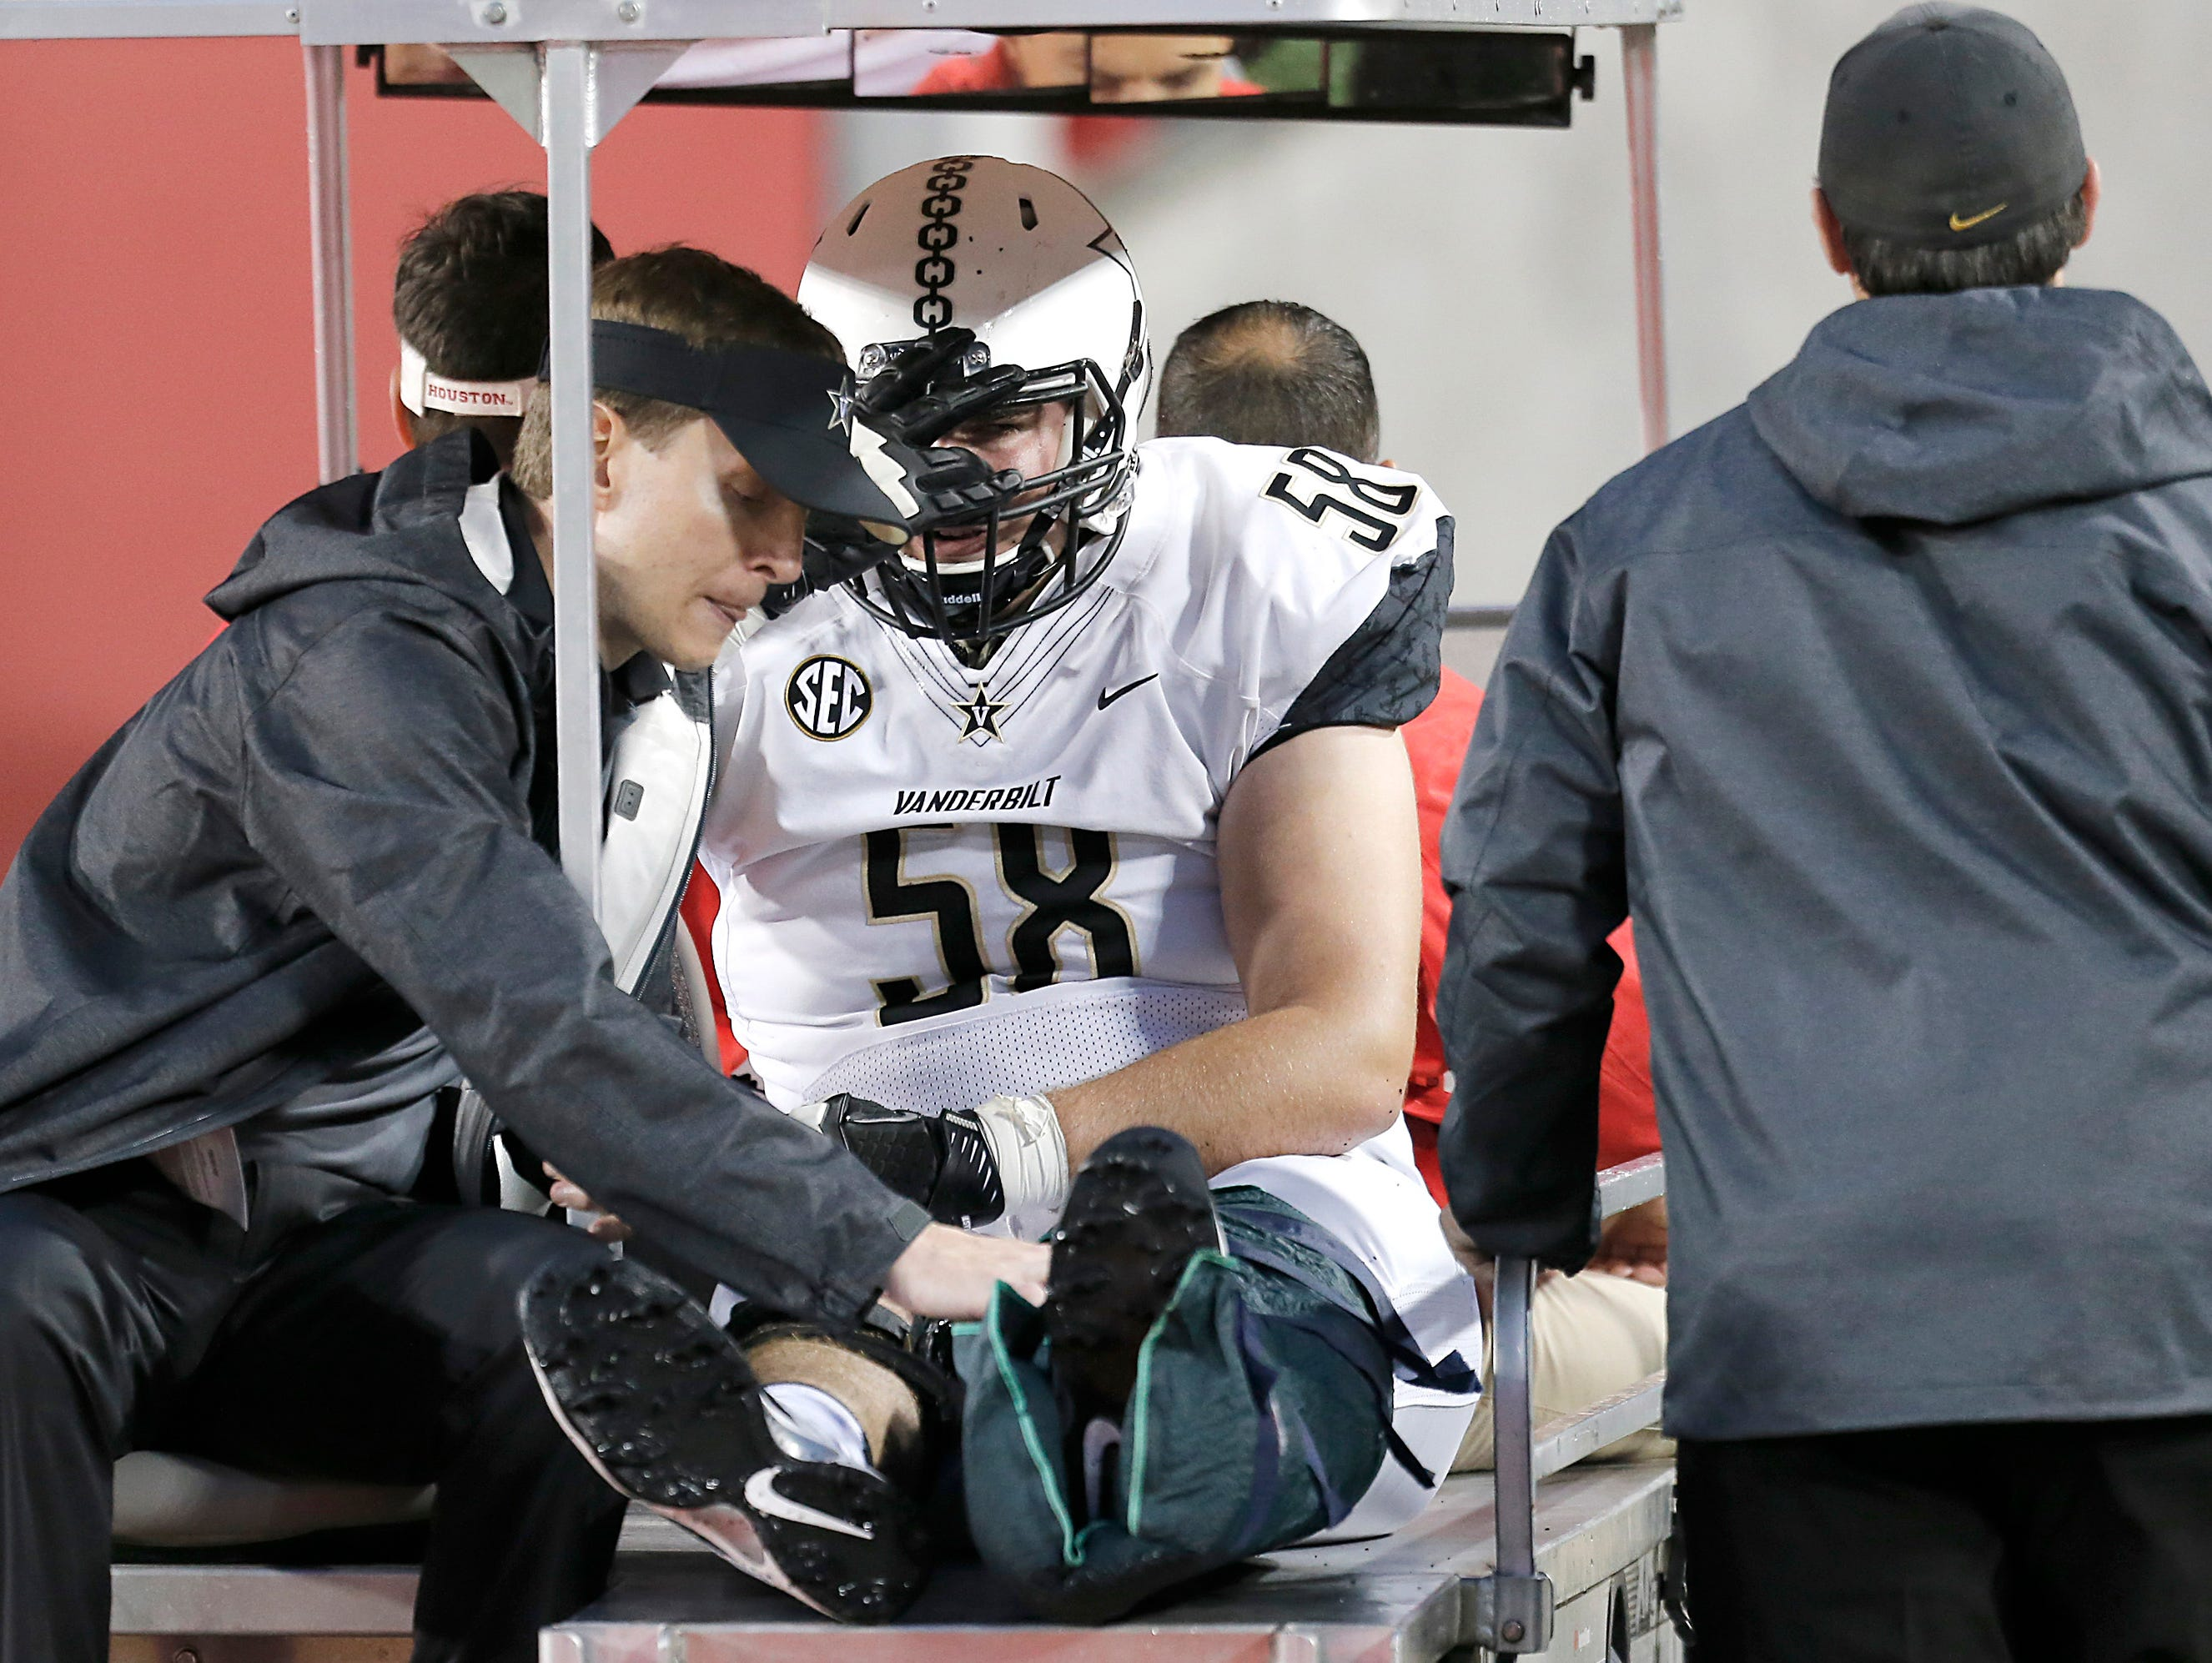 Injured Vanderbilt offensive lineman Justin Skule (58) leaves the field after getting hurt playing against Houston in the first quarter on Oct. 31, 2015.